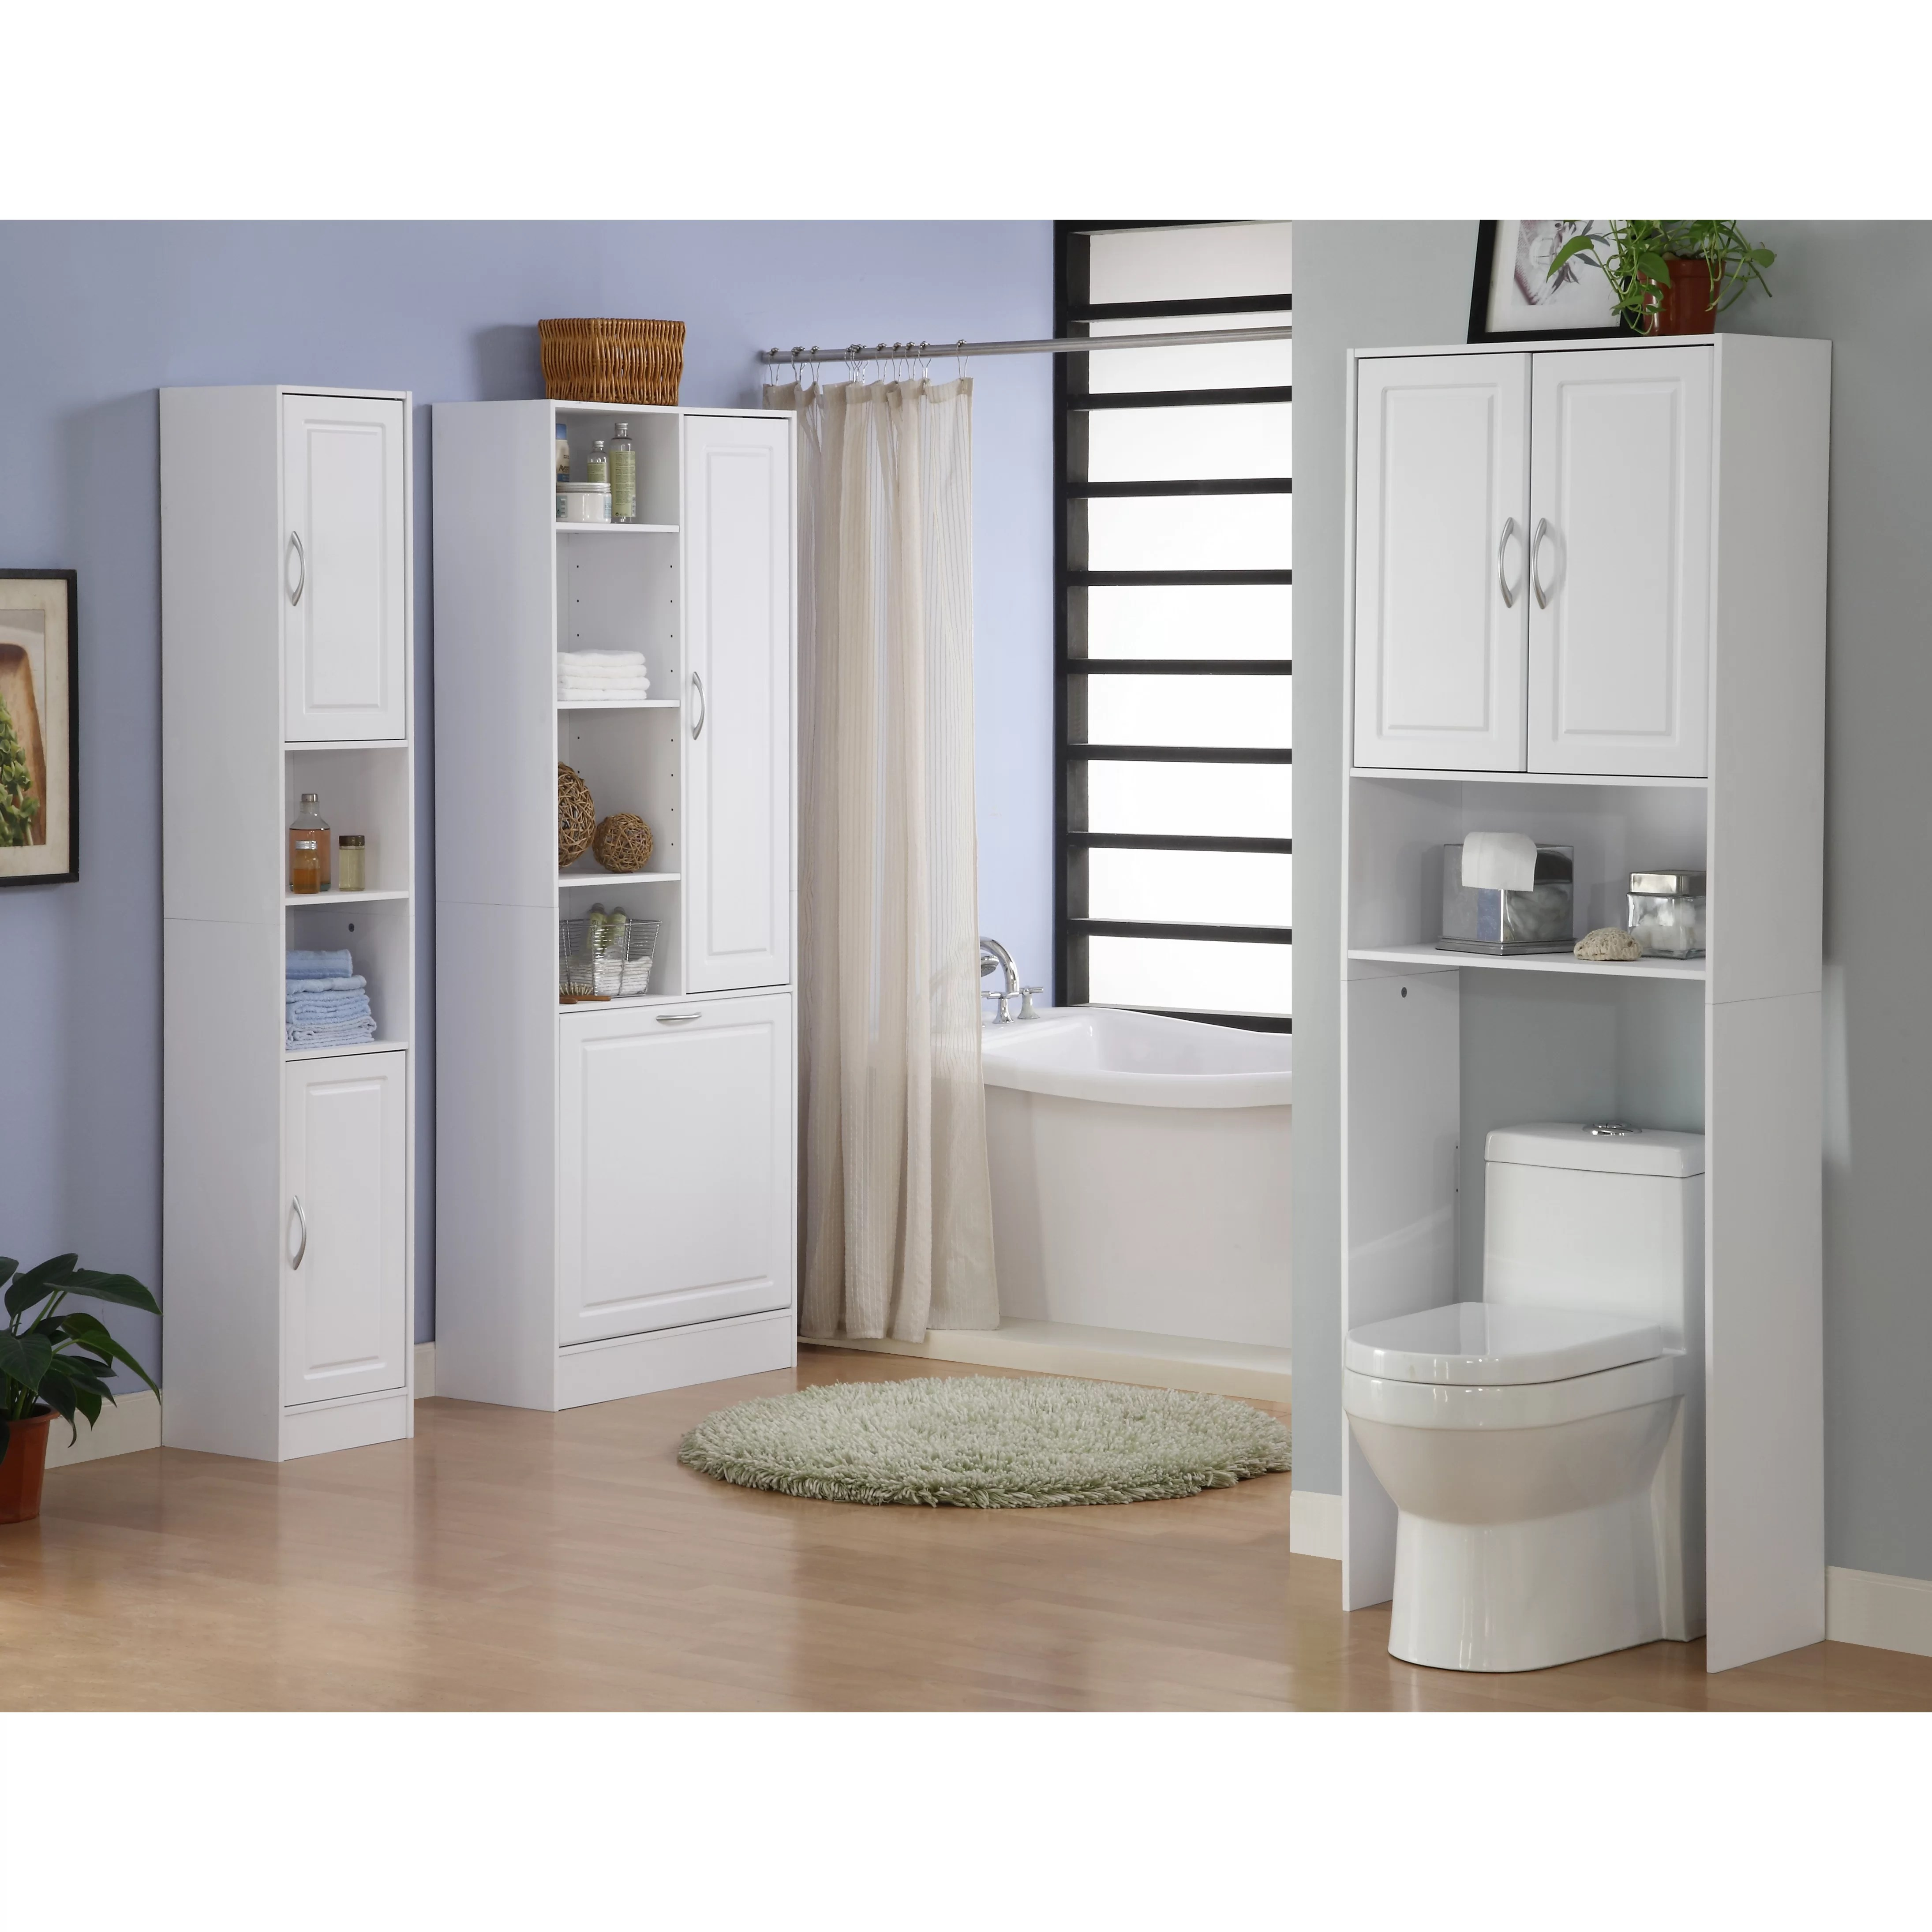 4D Concepts Storage and Organization Over the Toilet